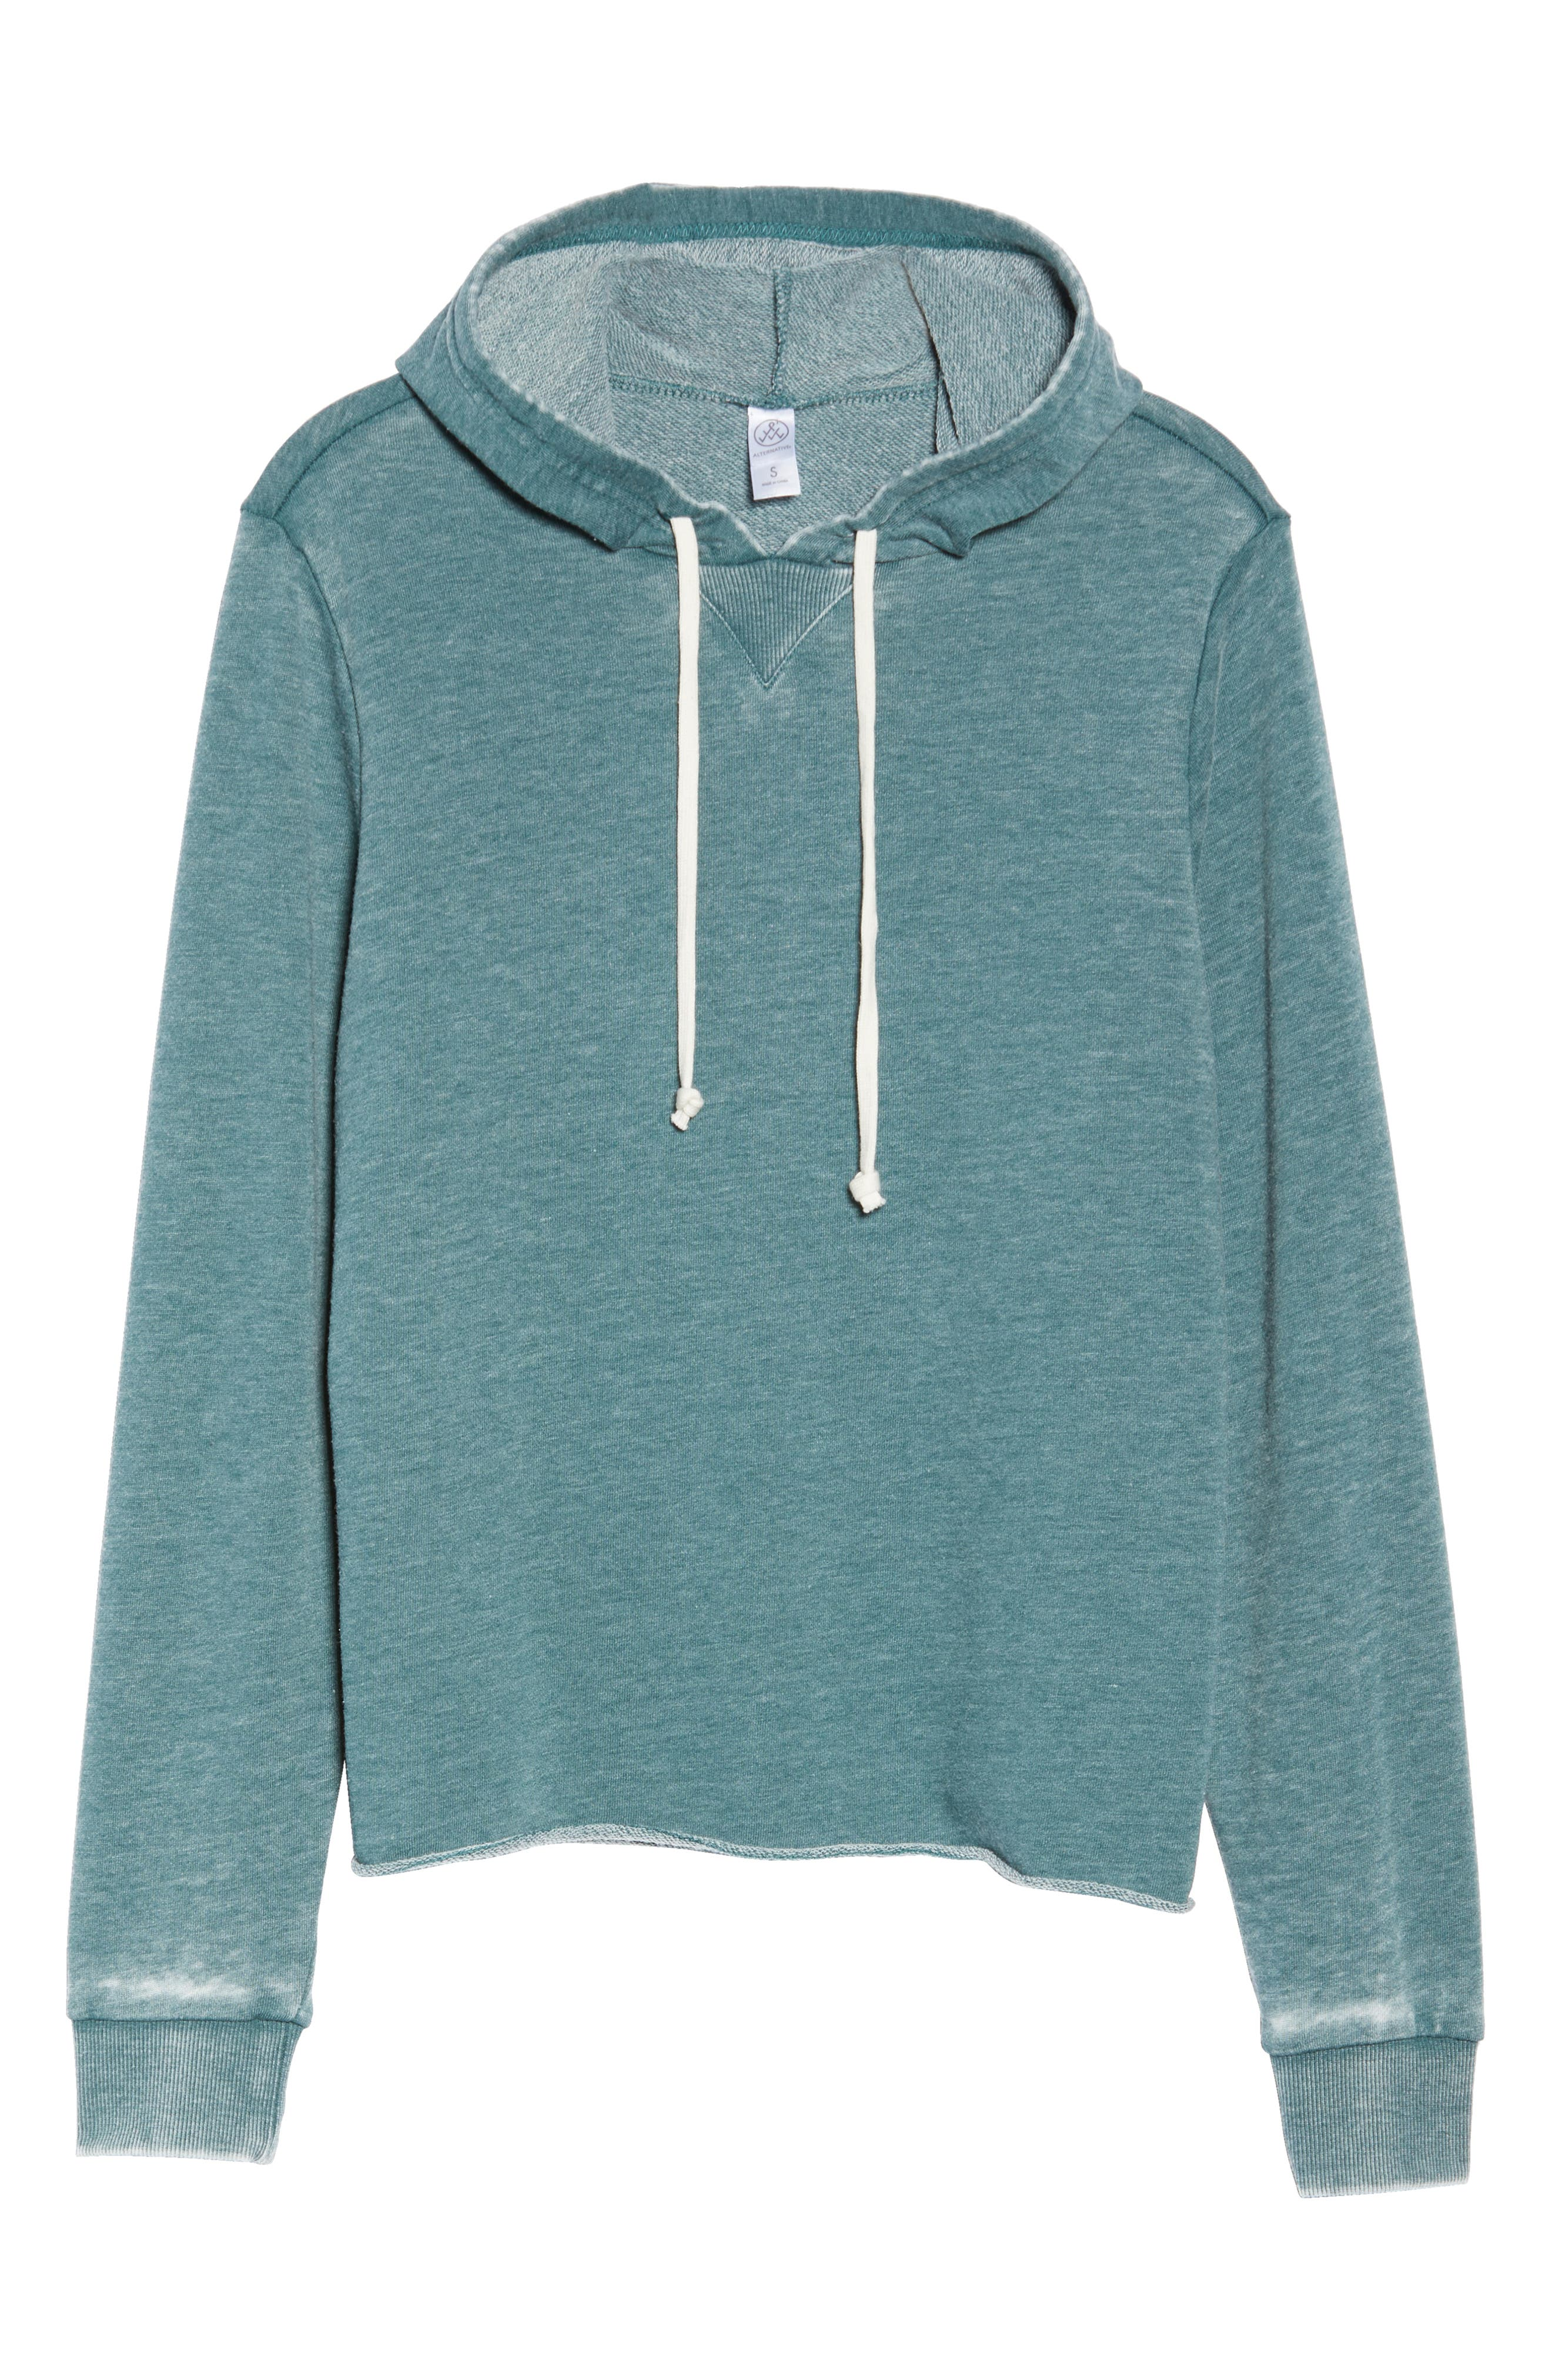 Day Off Hoodie,                             Alternate thumbnail 29, color,